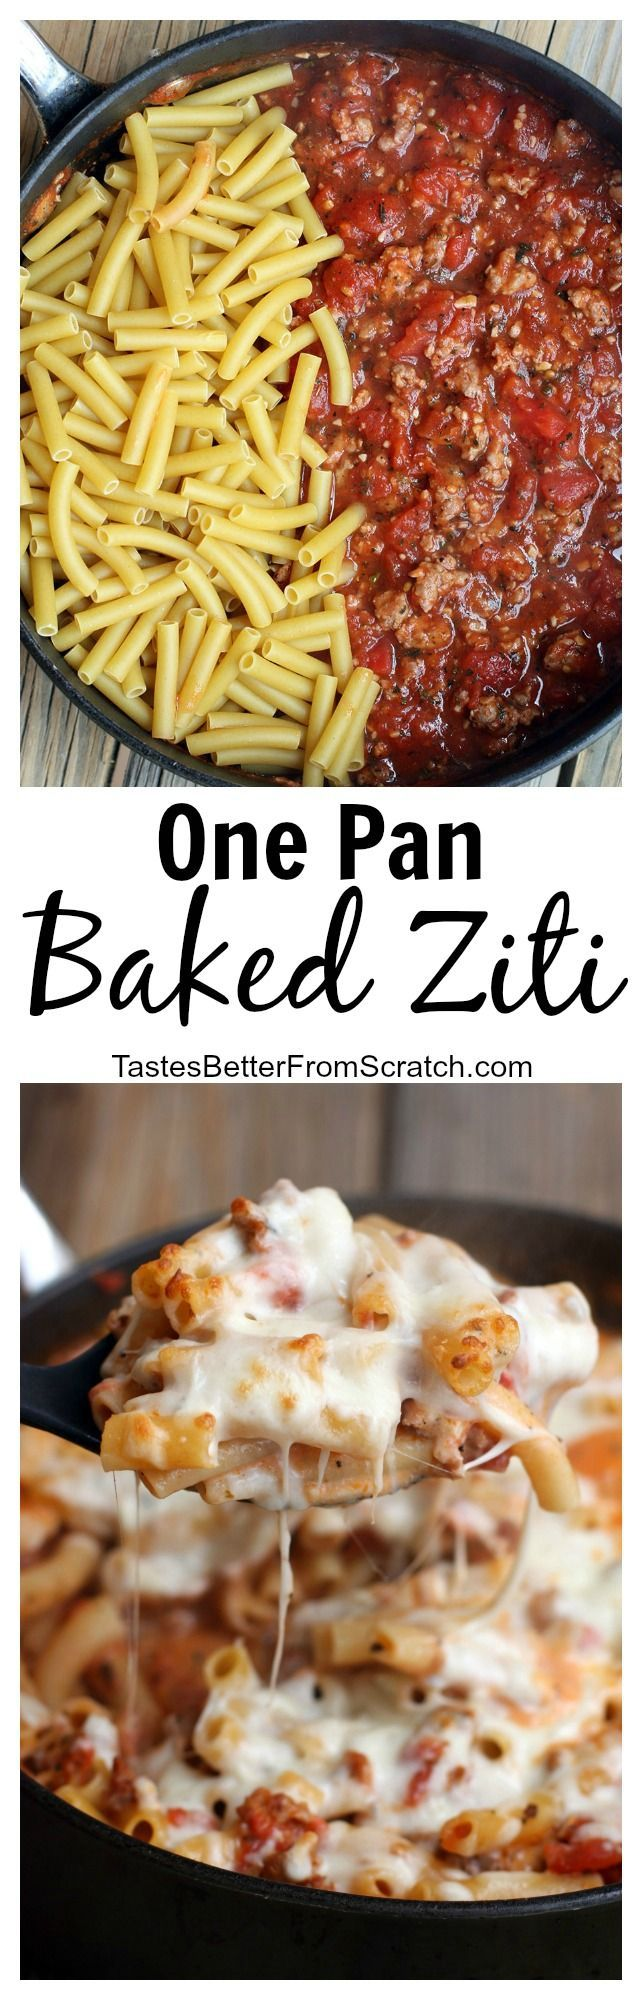 My family LOVES this easy  simple One Pan Baked Ziti recipe  It  39 s fast and delicious  ready in less than 30 minutes